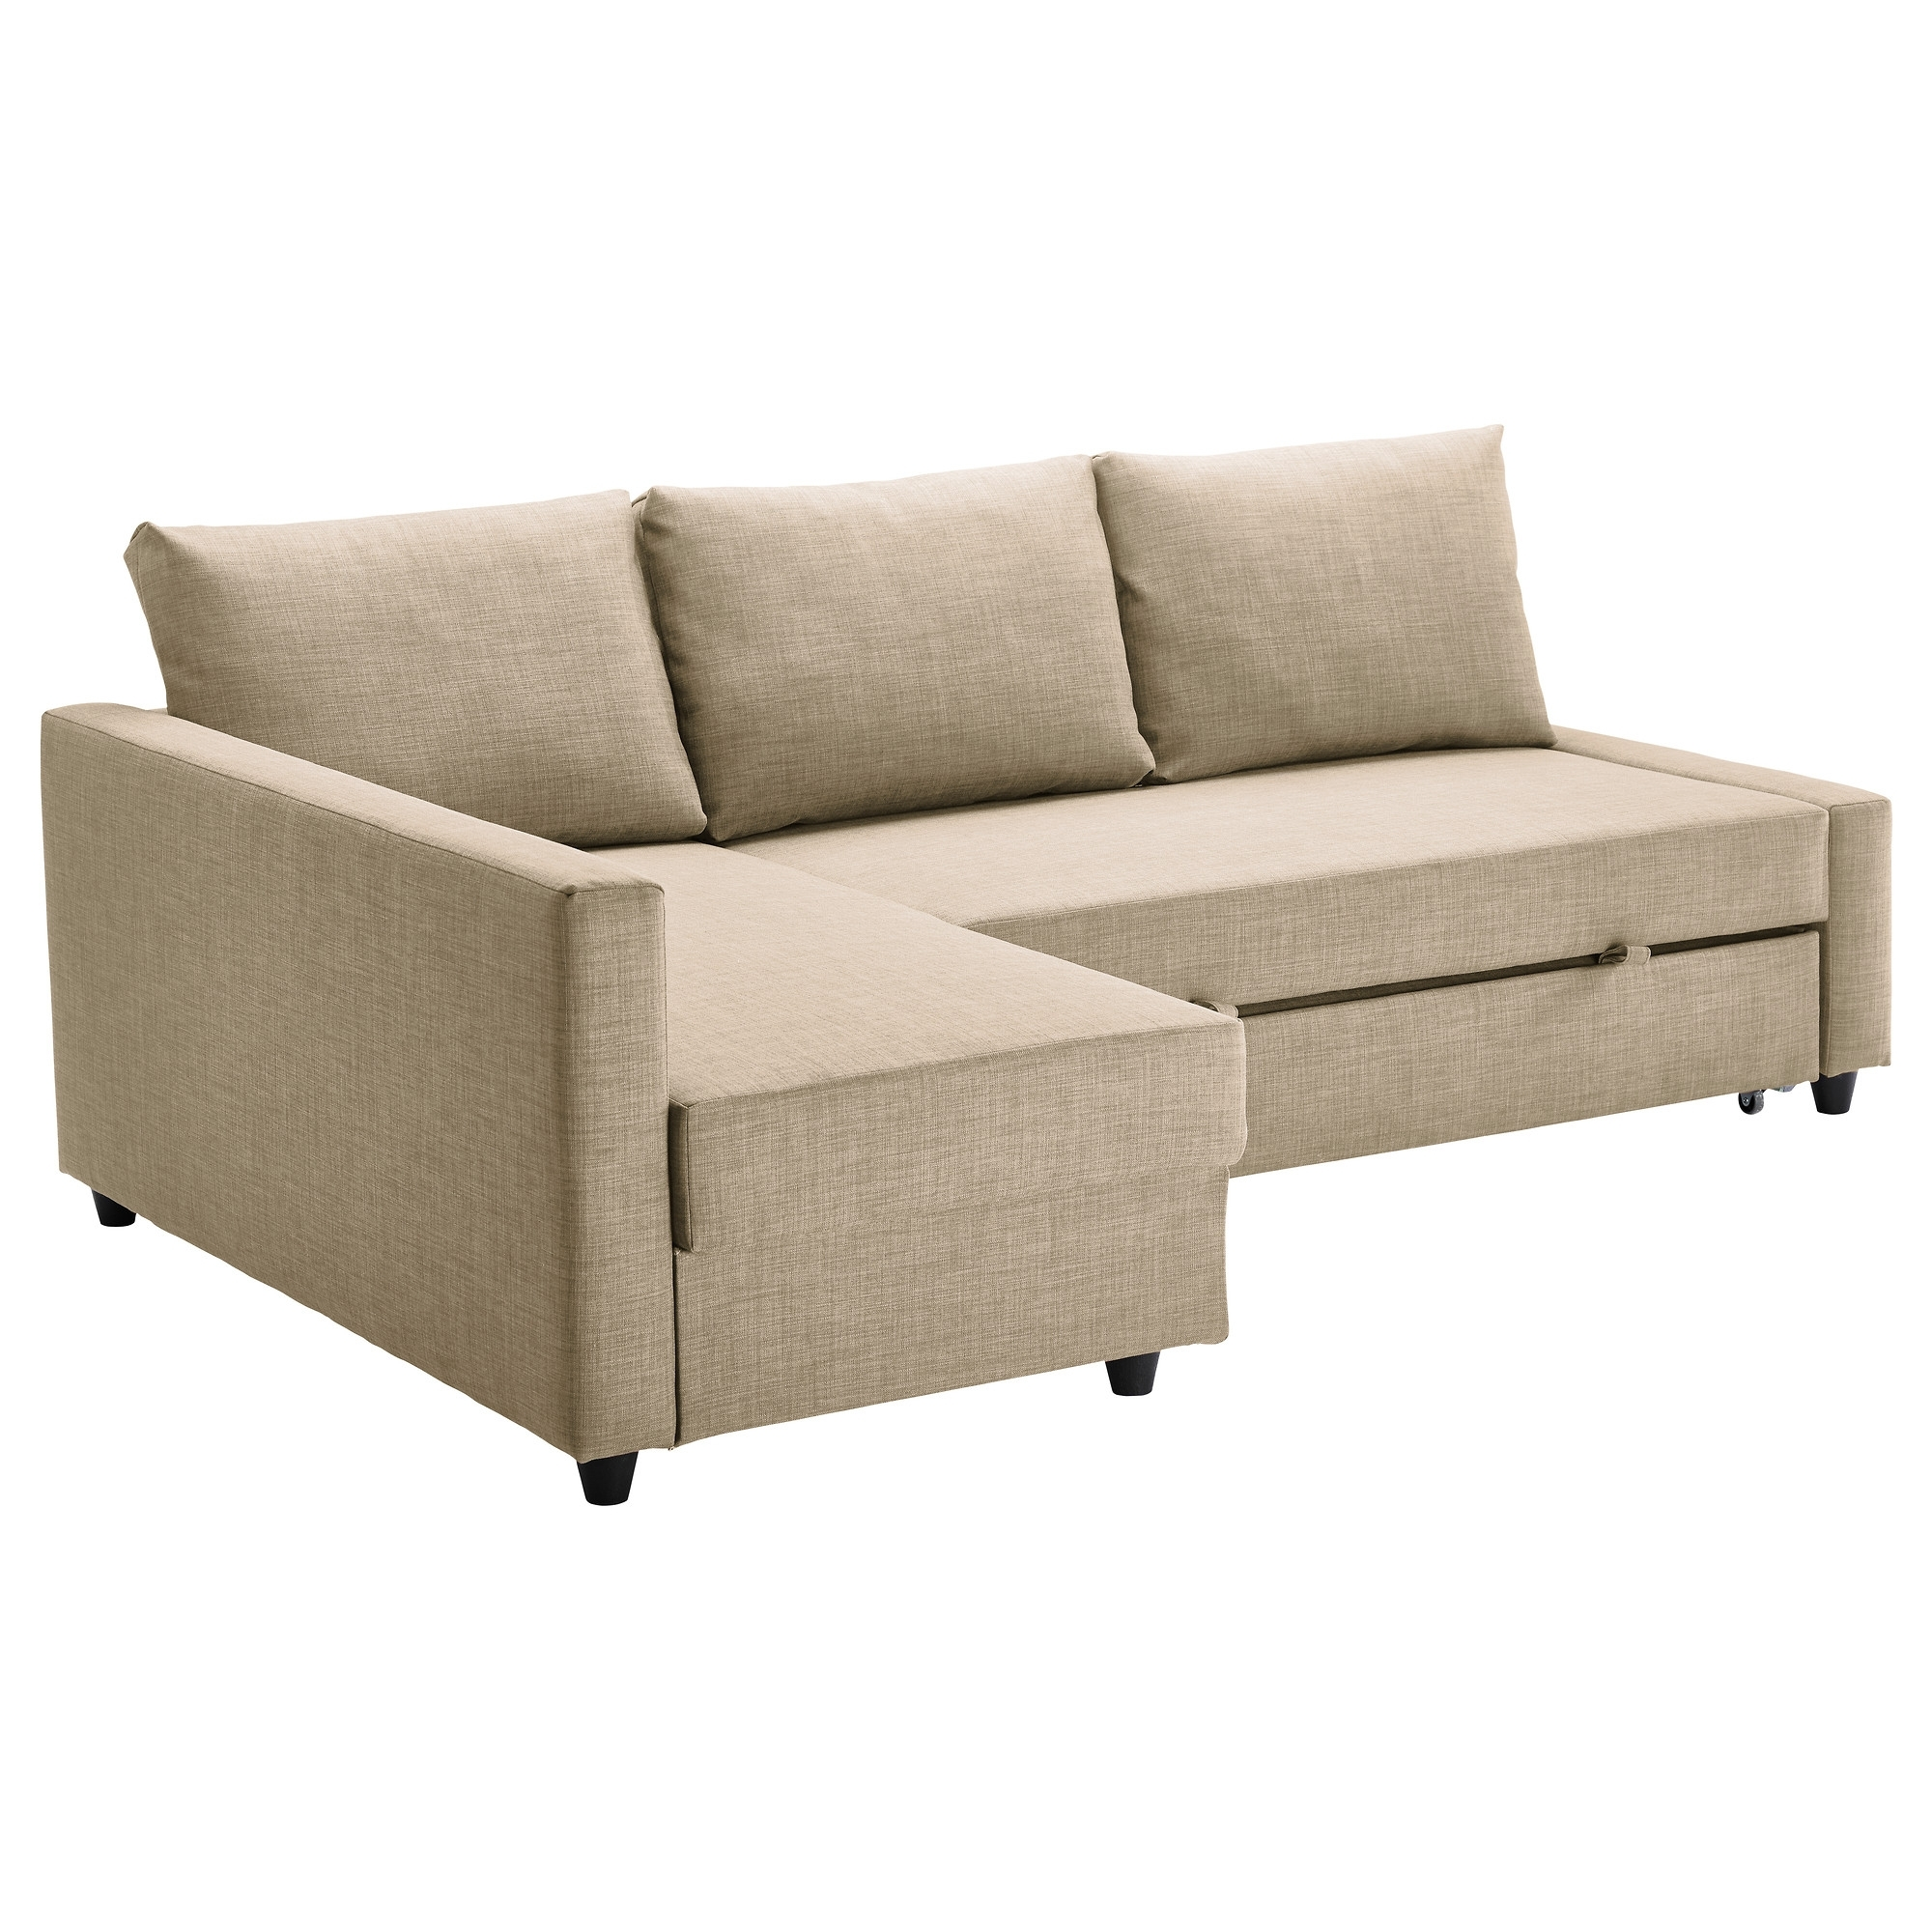 Latest Friheten Sleeper Sectional,3 Seat W/storage – Skiftebo Dark Gray In Chaise Sofa Sleepers (View 14 of 15)